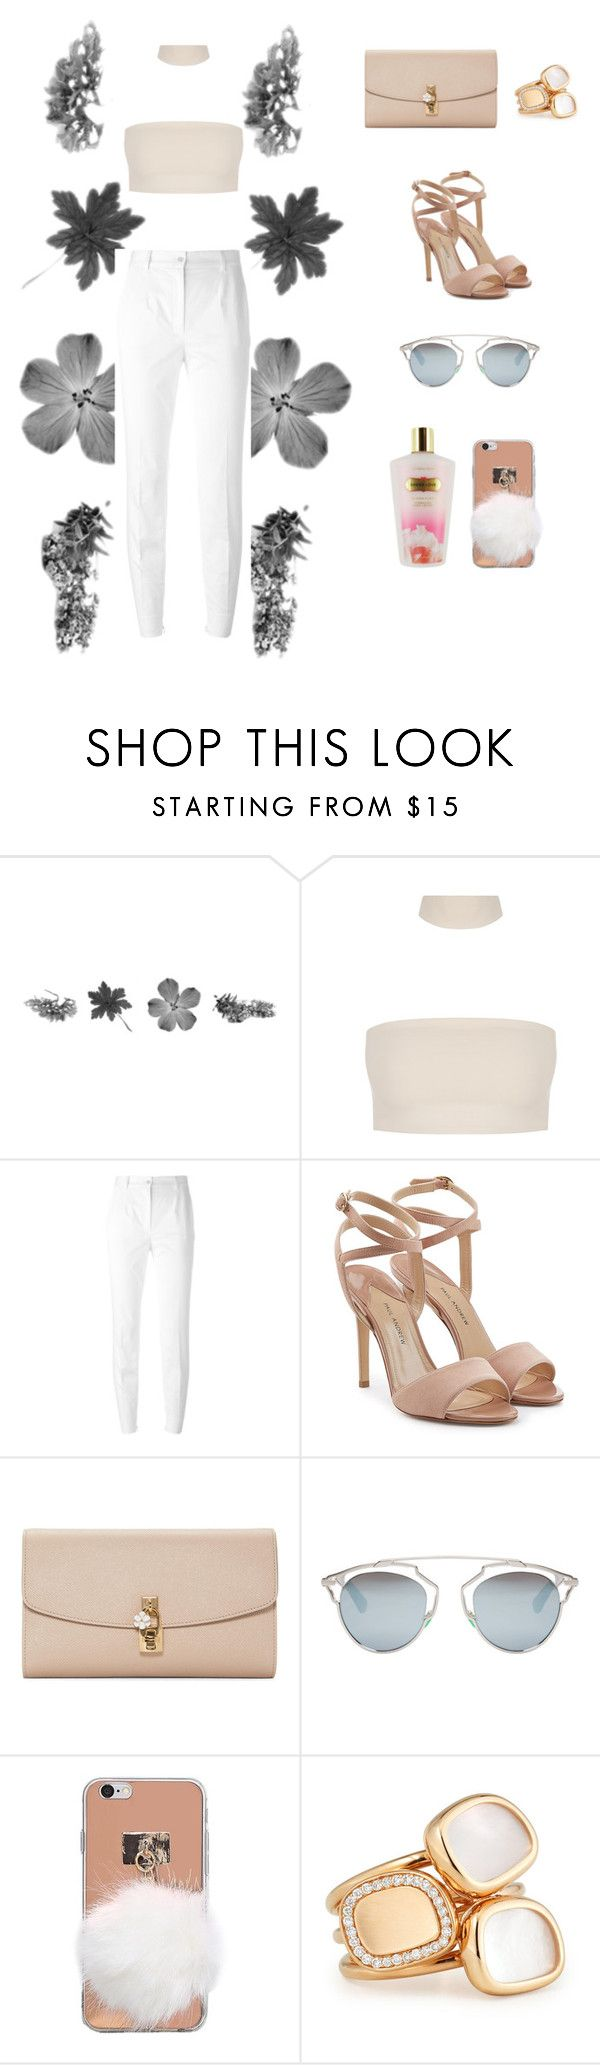 """""""A walk around town ✨"""" by barbaraa-xx ❤ liked on Polyvore featuring Dolce&Gabbana, Paul Andrew, Christian Dior, Roberto Coin and Victoria's Secret"""